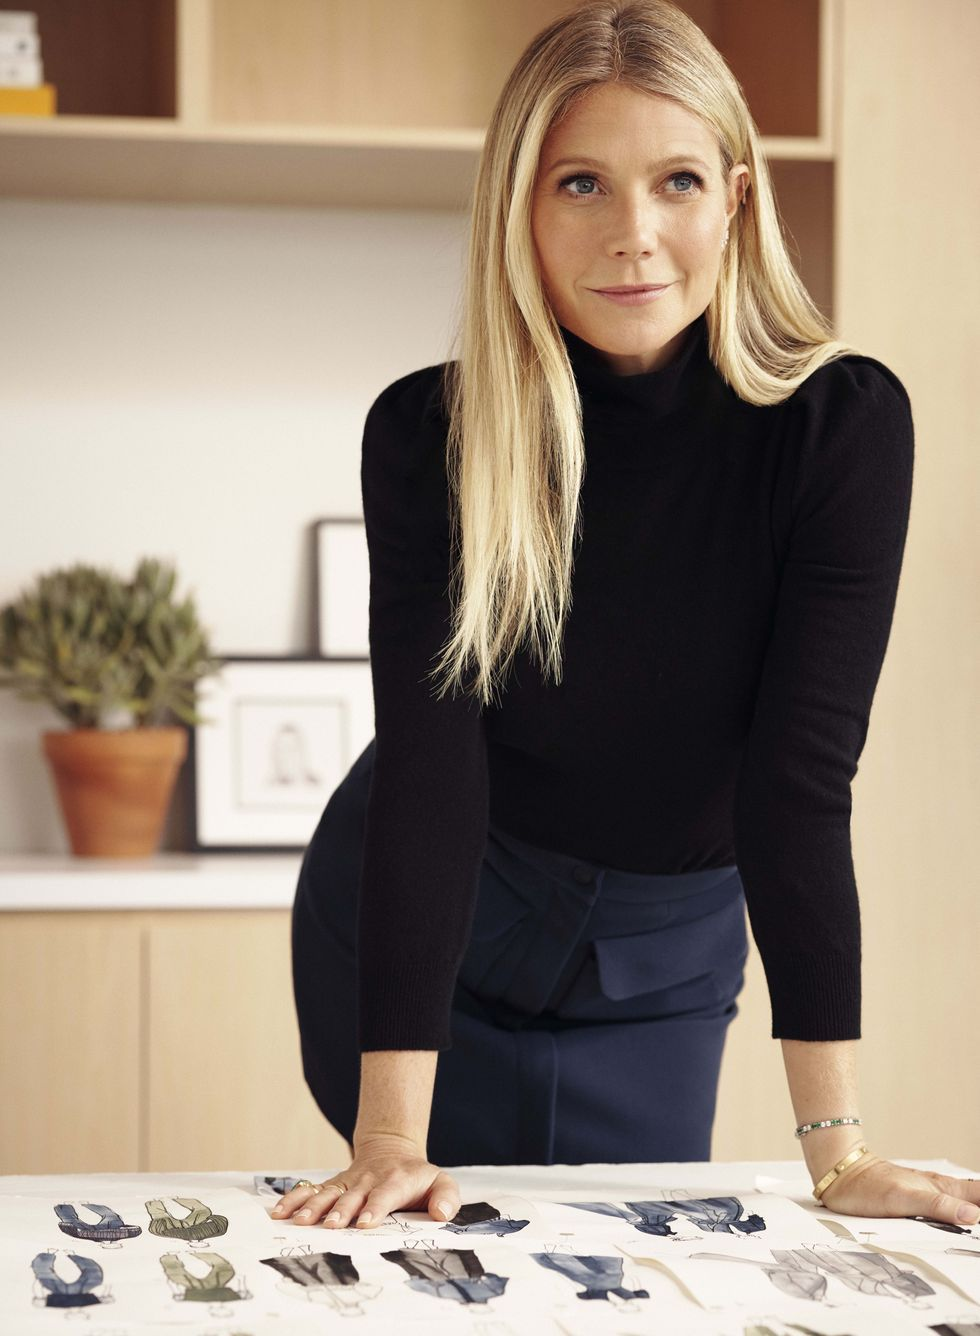 Goop's fashion label is launching a capsule collection based on Gwyneth Paltrow's office uniform